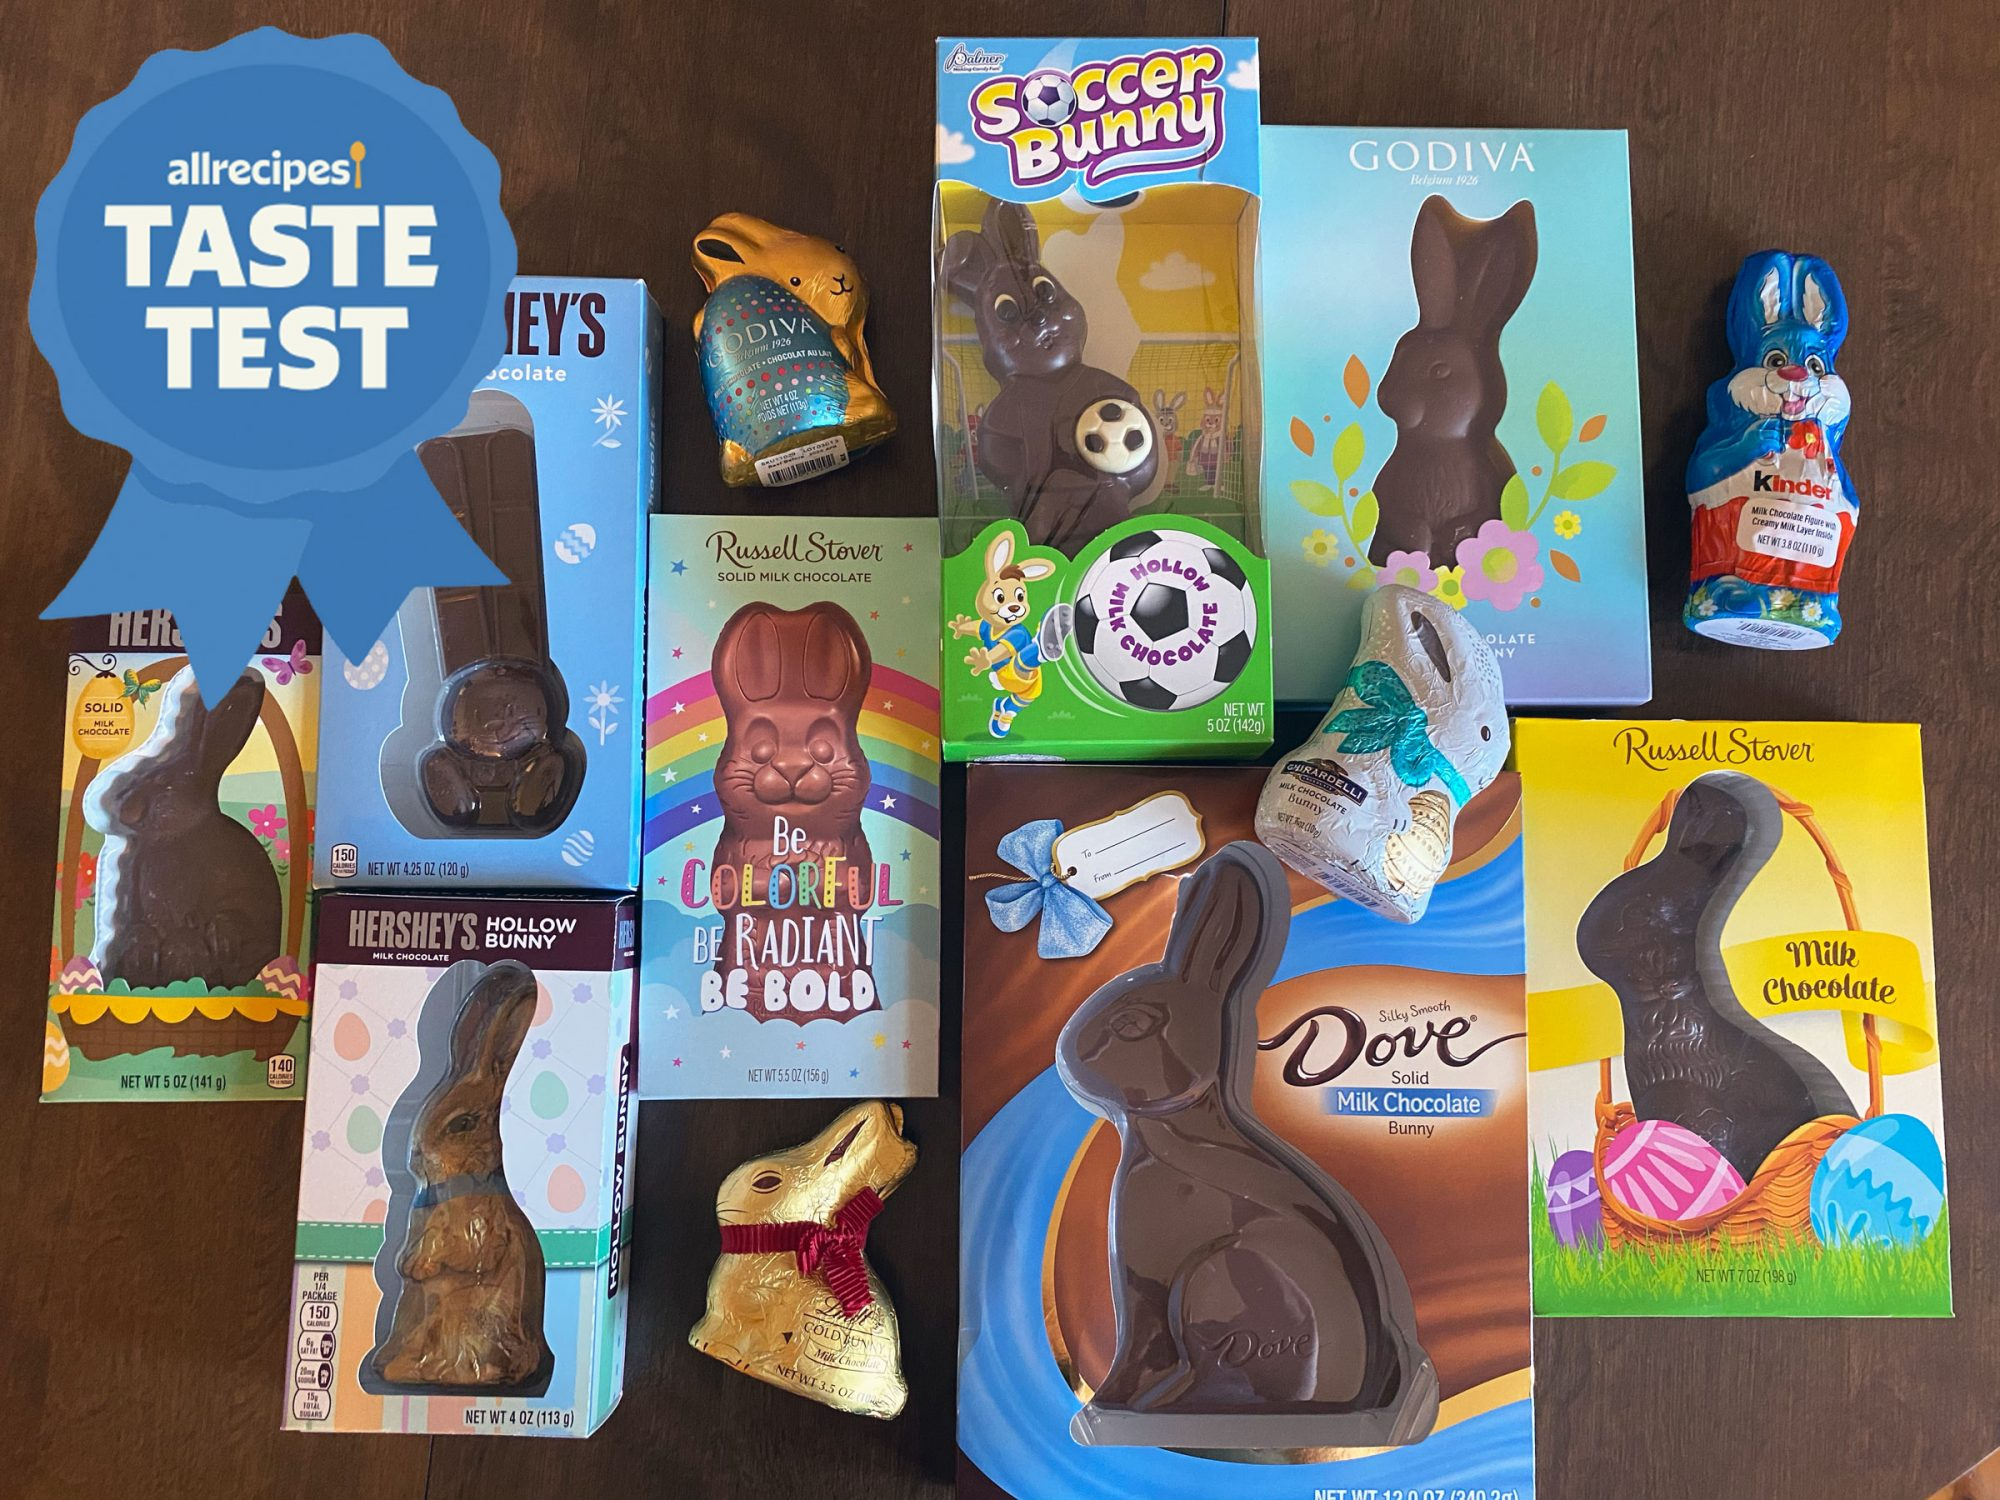 taste test chocolate bunnies - an array of chocolate bunnies in packages are displayed on a wooden table